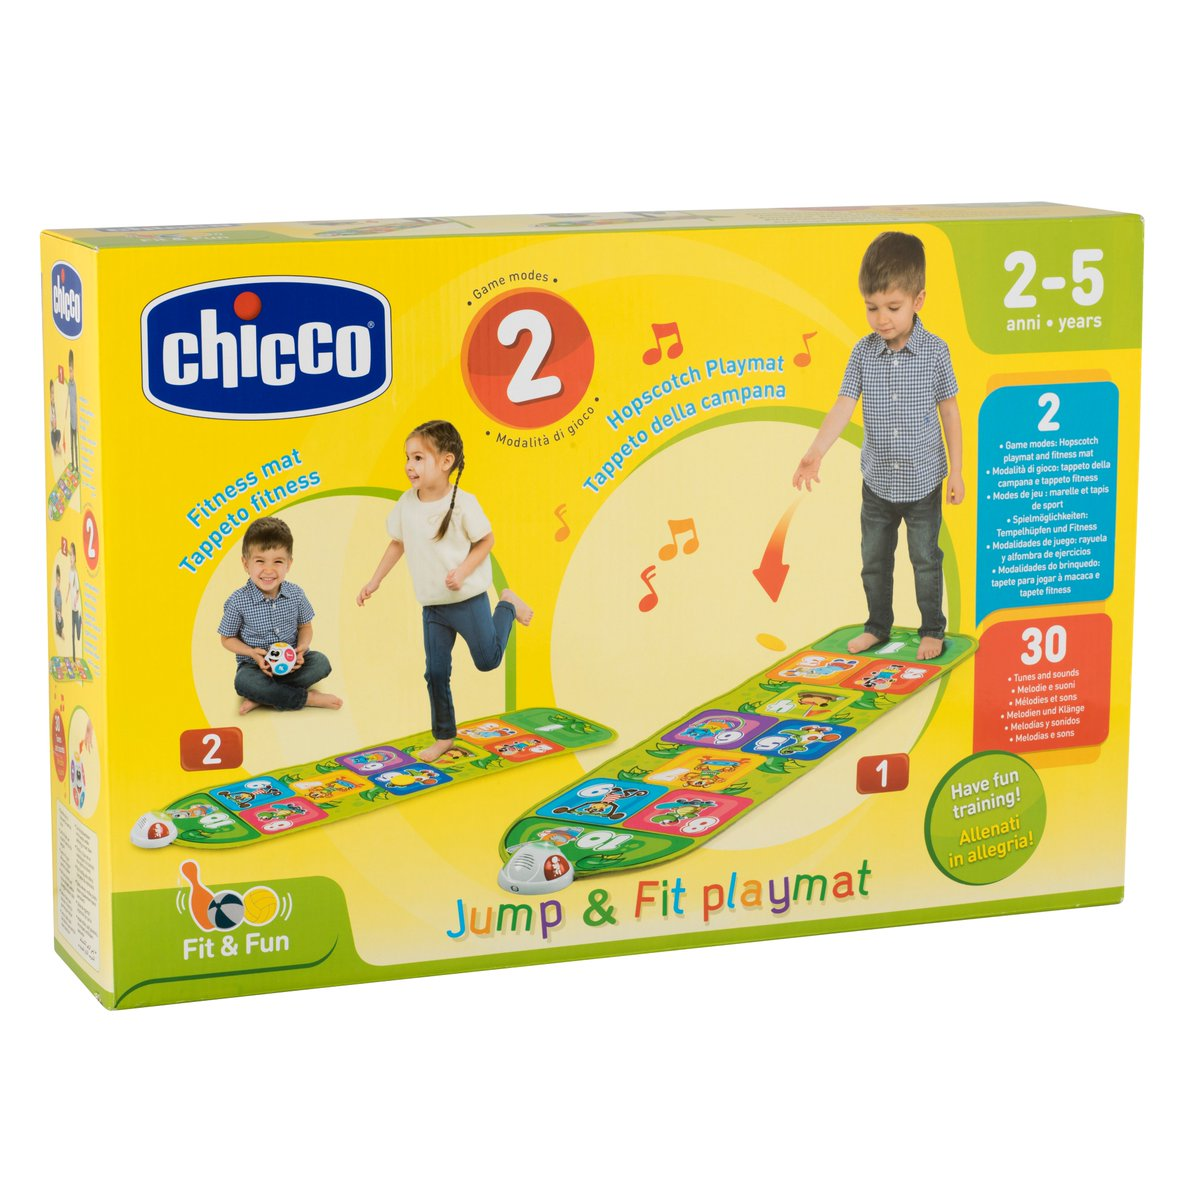 Chicco Baby Sa On Twitter Introducing Fit Fun Jump Fit